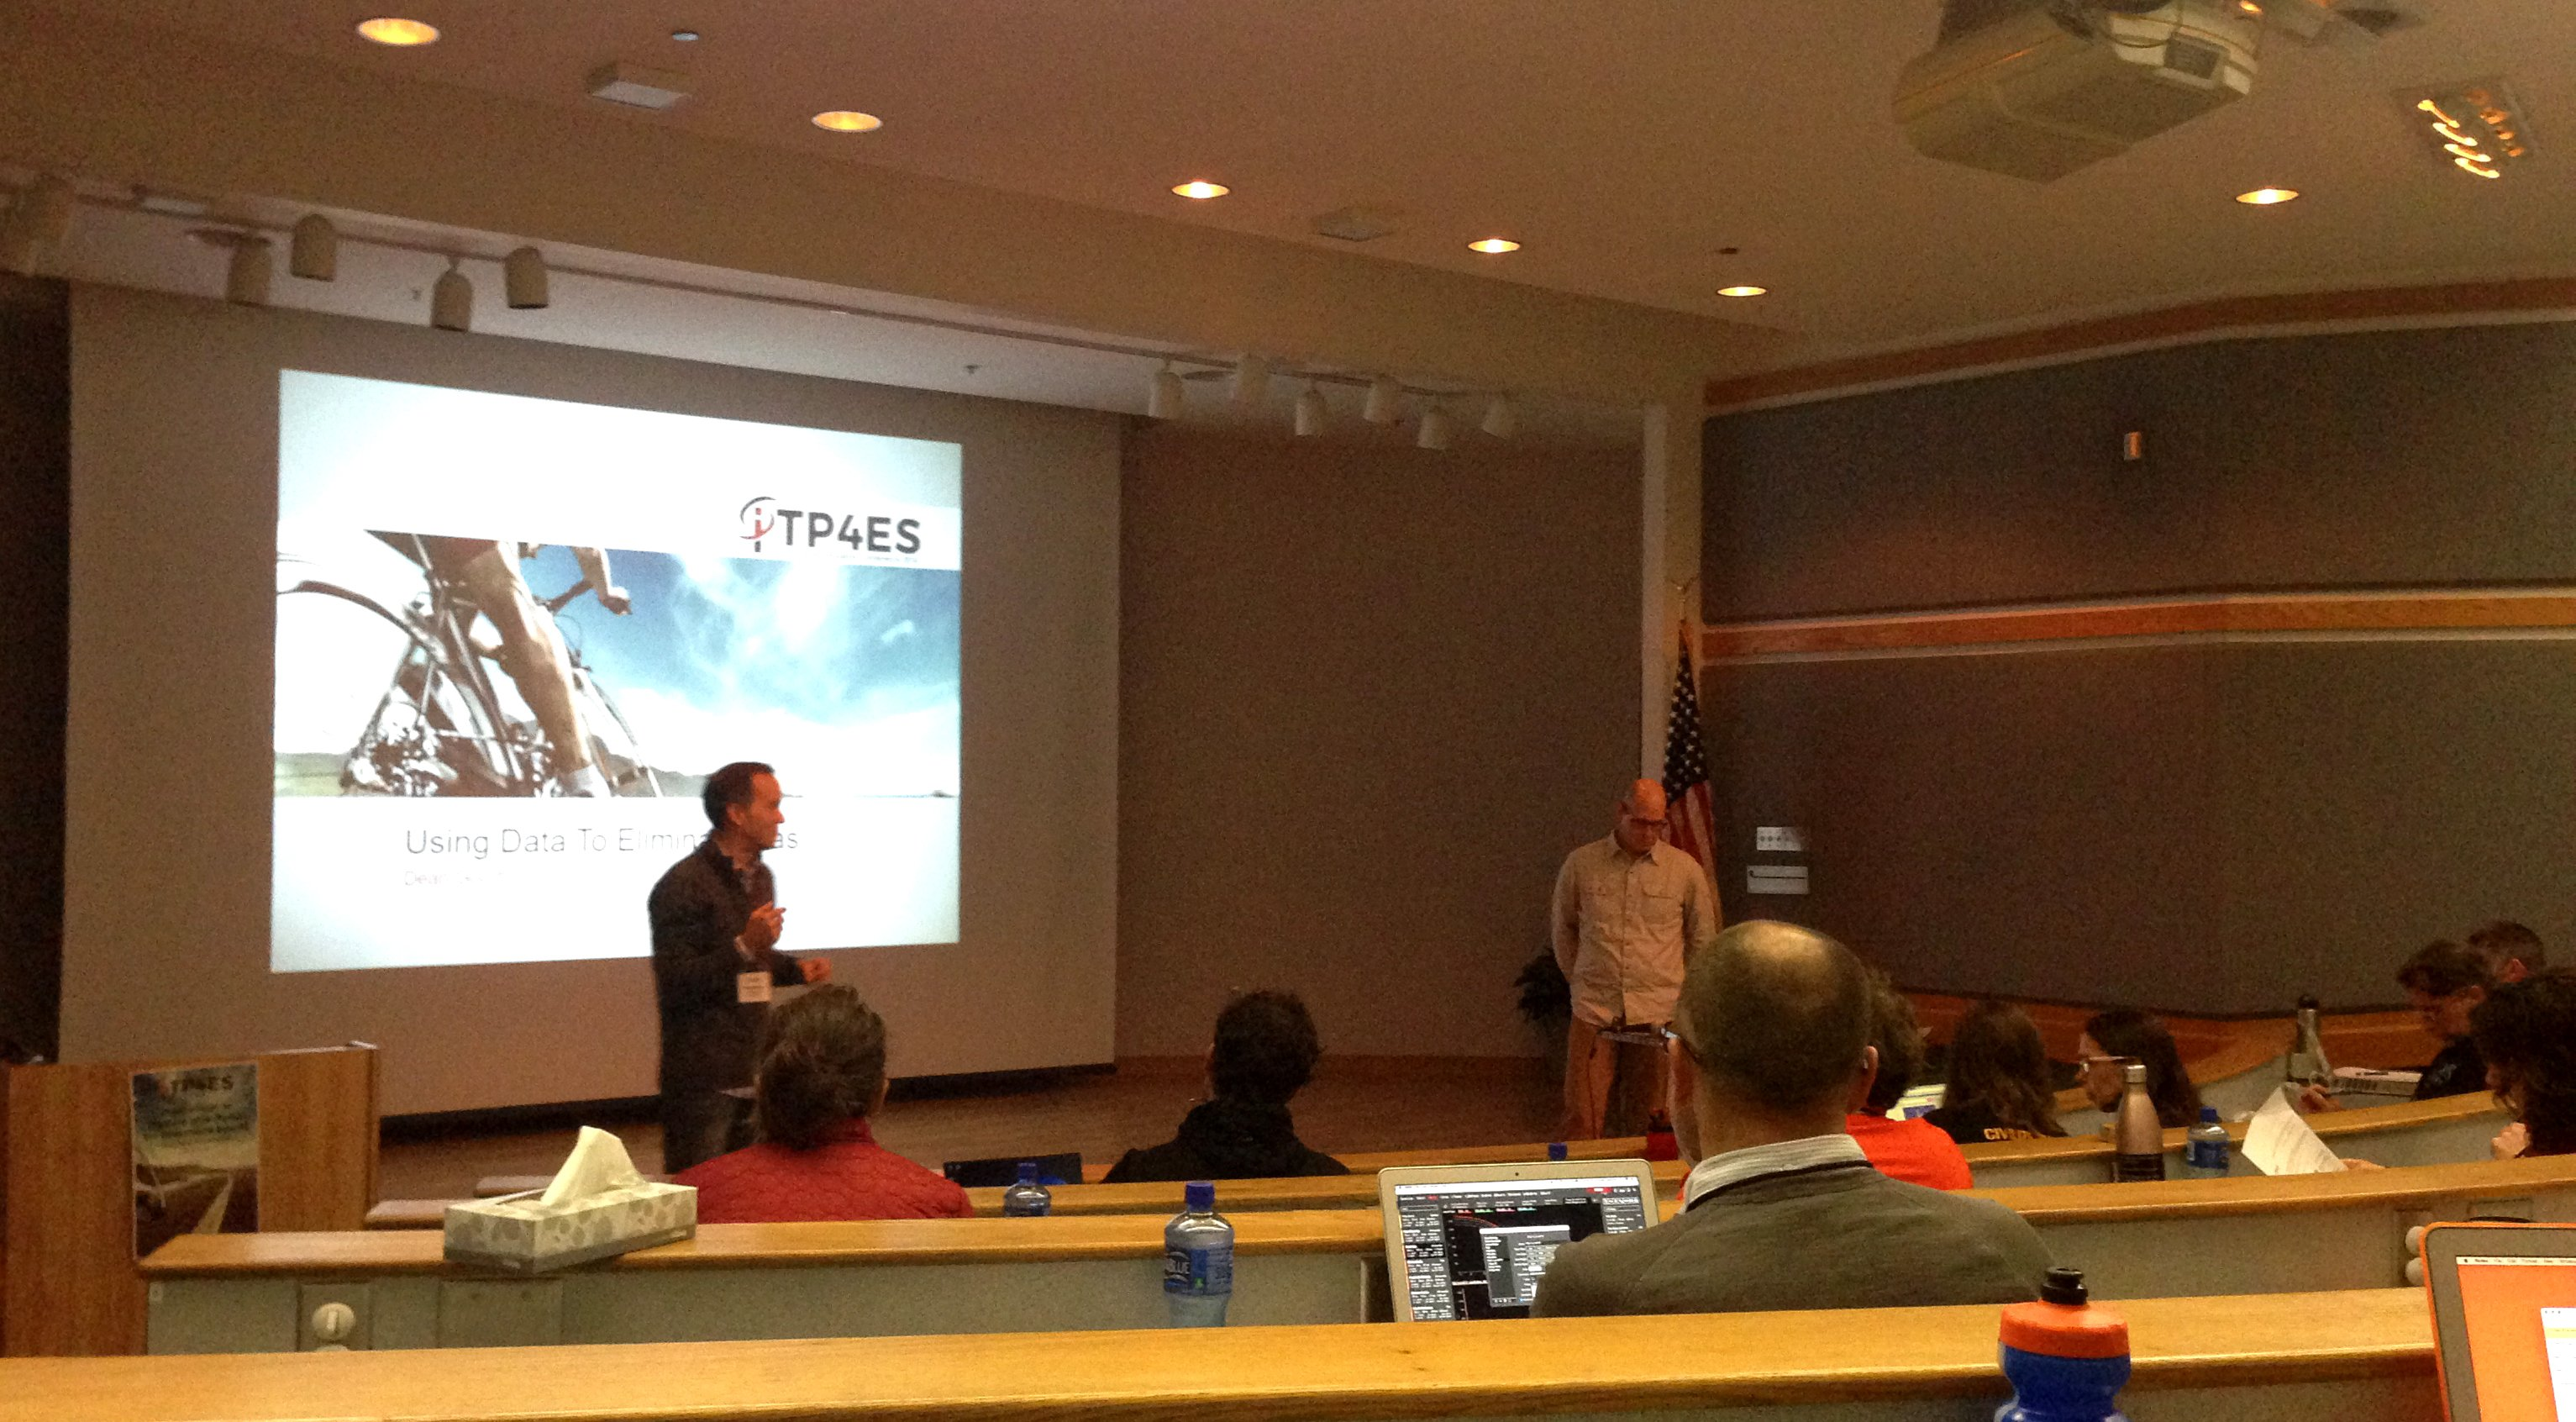 Tim Cusick and Dean Golich speaking at the 2016 ITP4ES conference